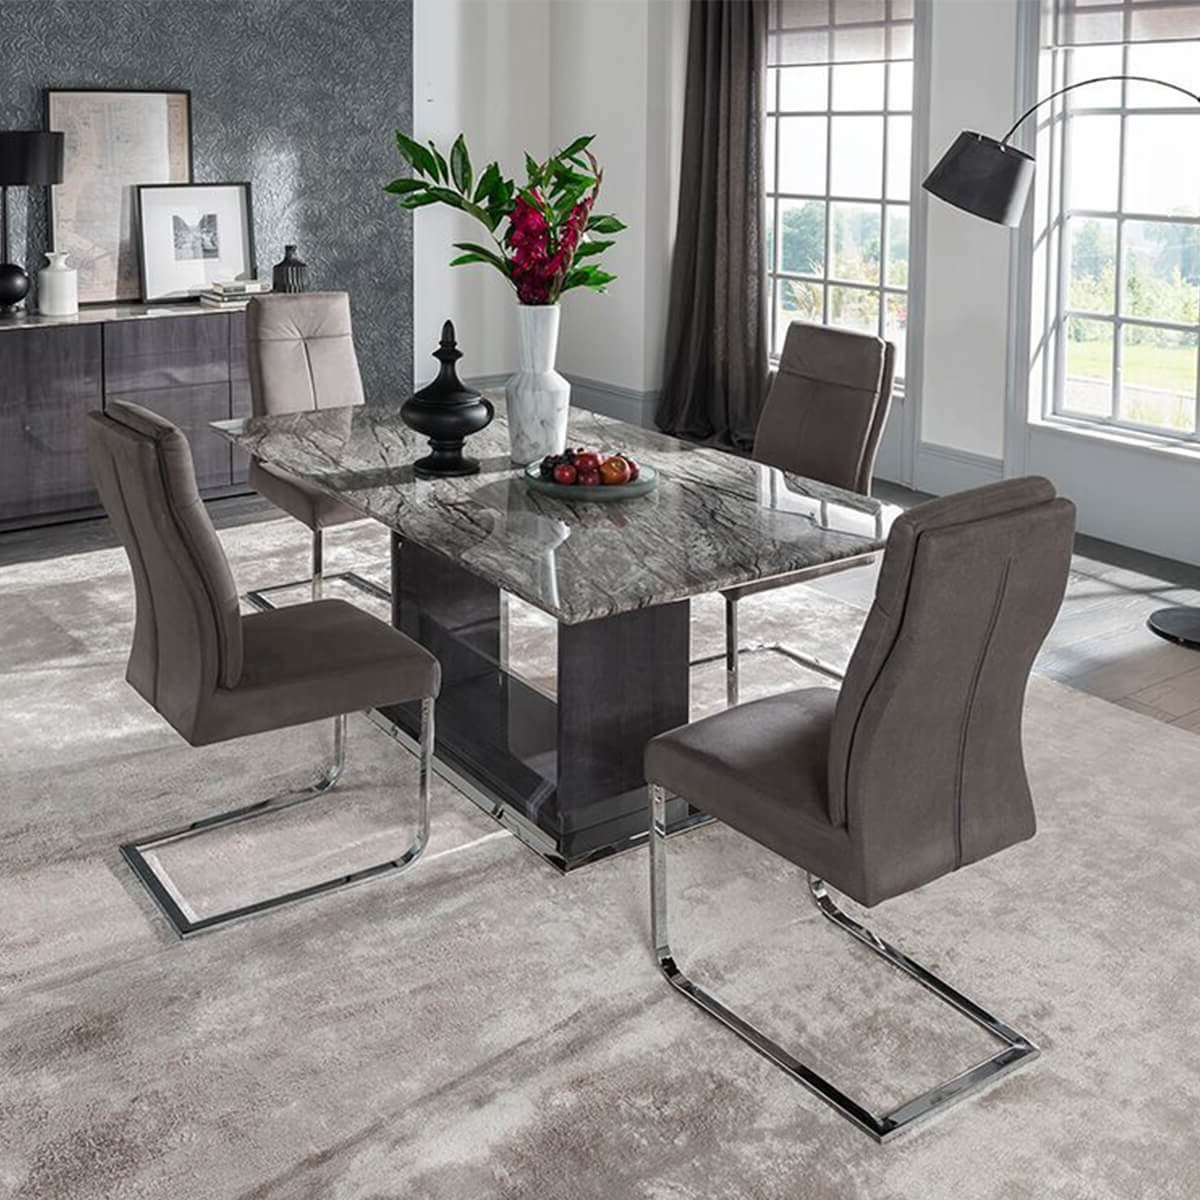 Fads With Regard To Most Recent 8 Seater Black Dining Tables (View 21 of 25)